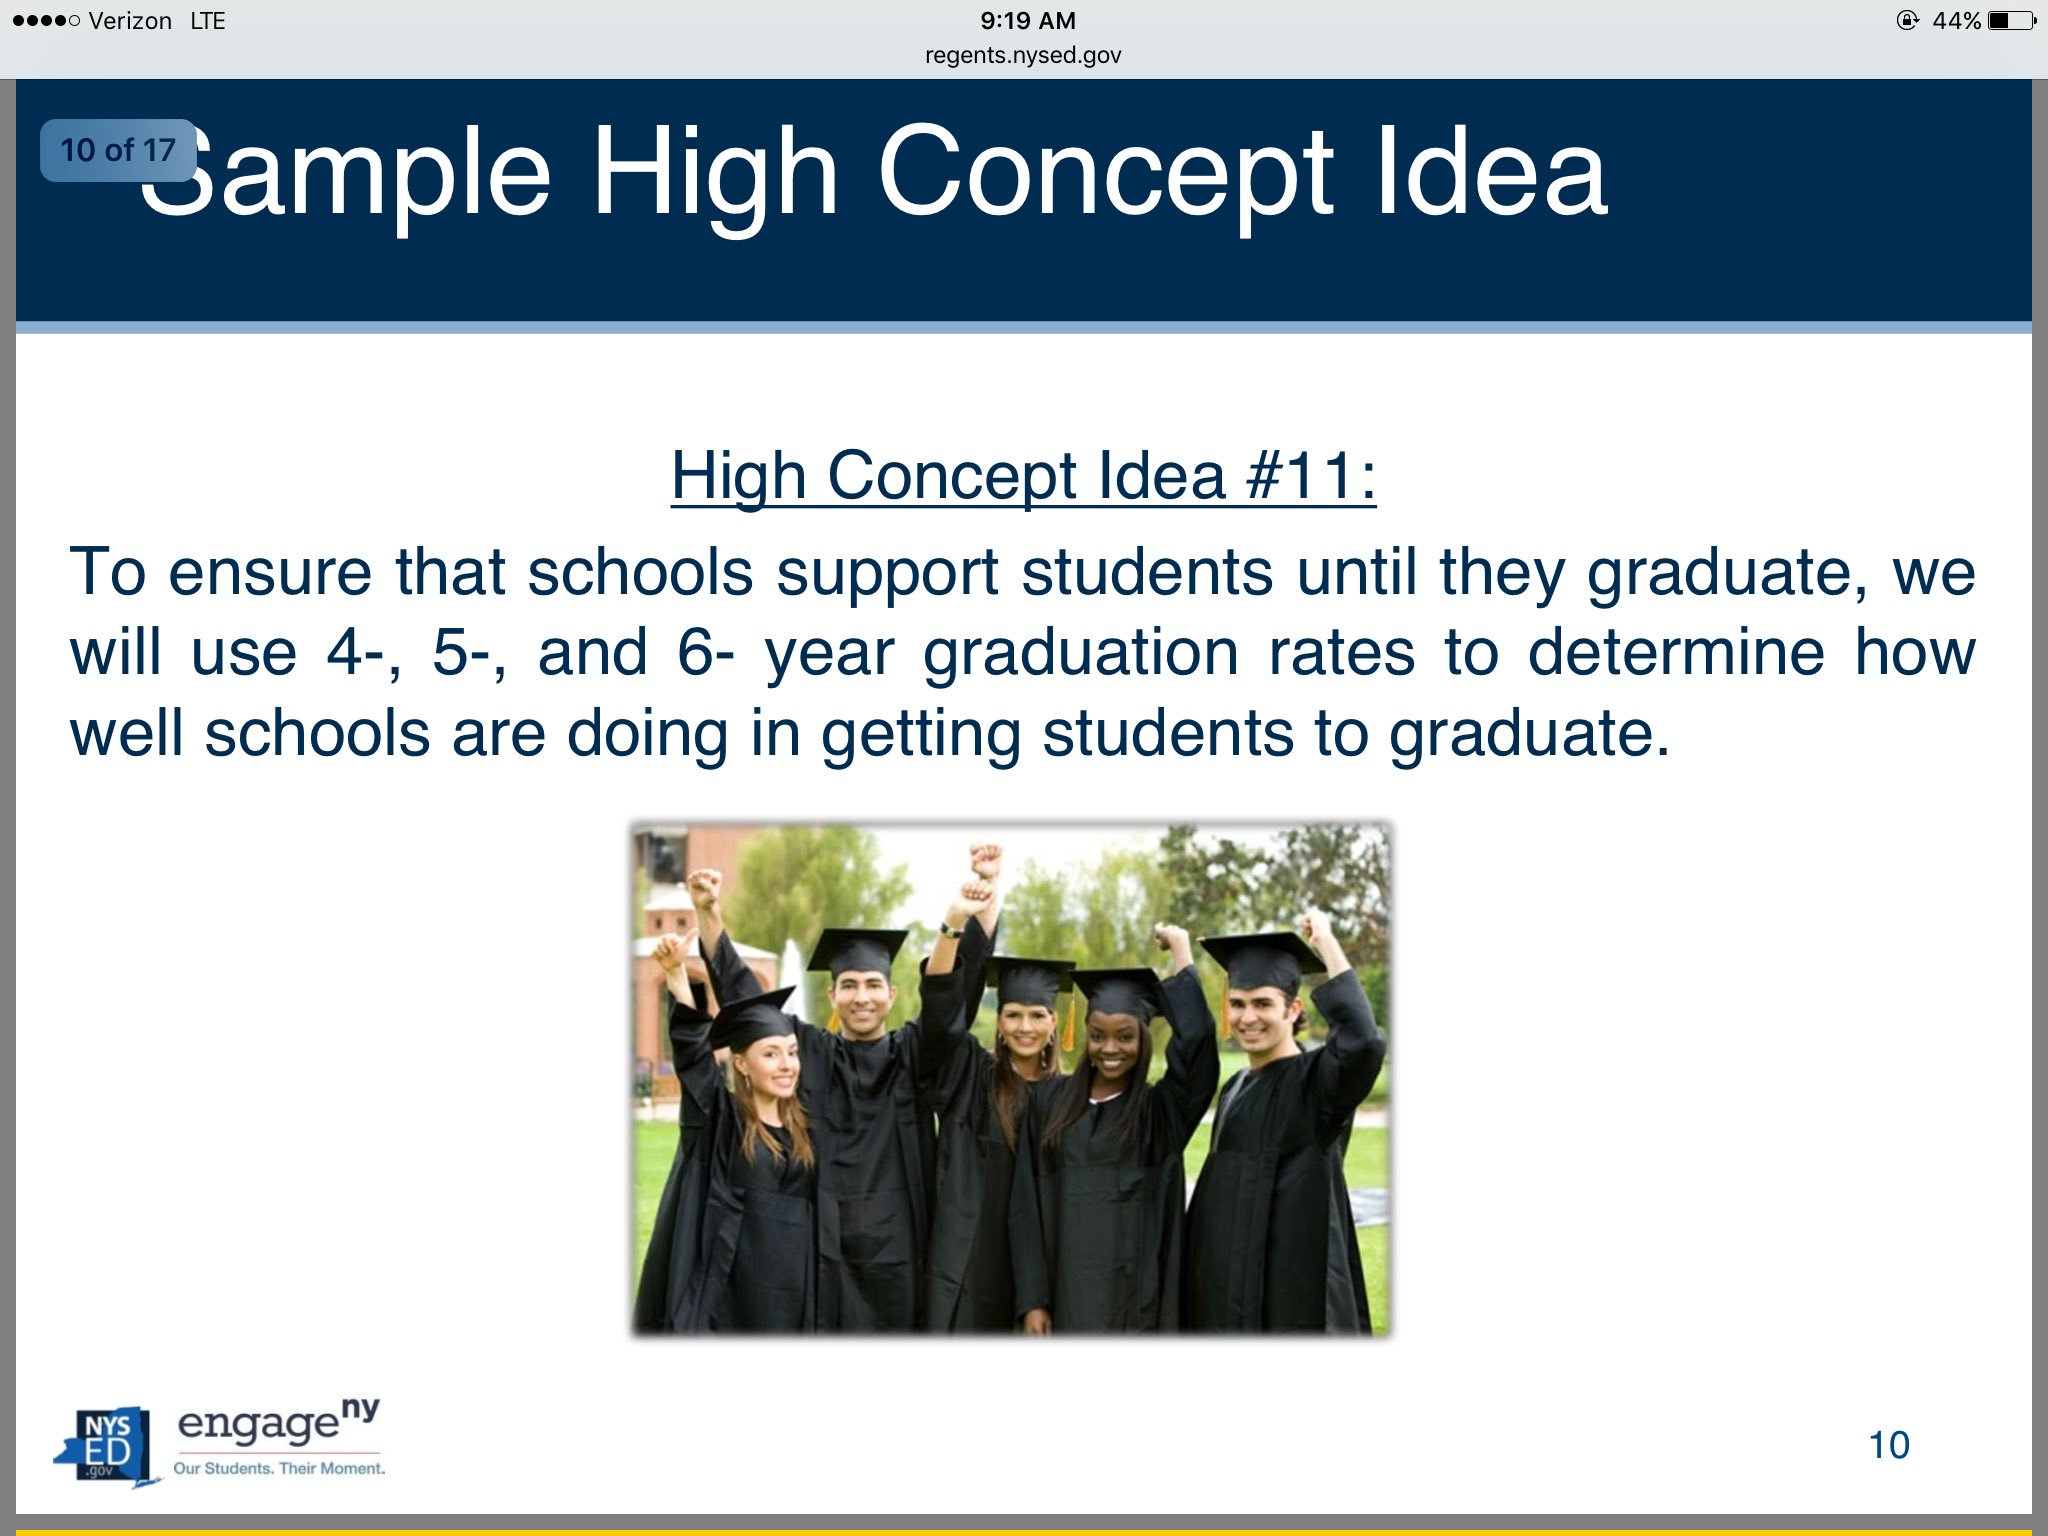 Sample @NYSEDNews high concept idea, grad rates, @NYSPTA addressed in ESSA comments to US DOE https://t.co/H4C6w40w1I